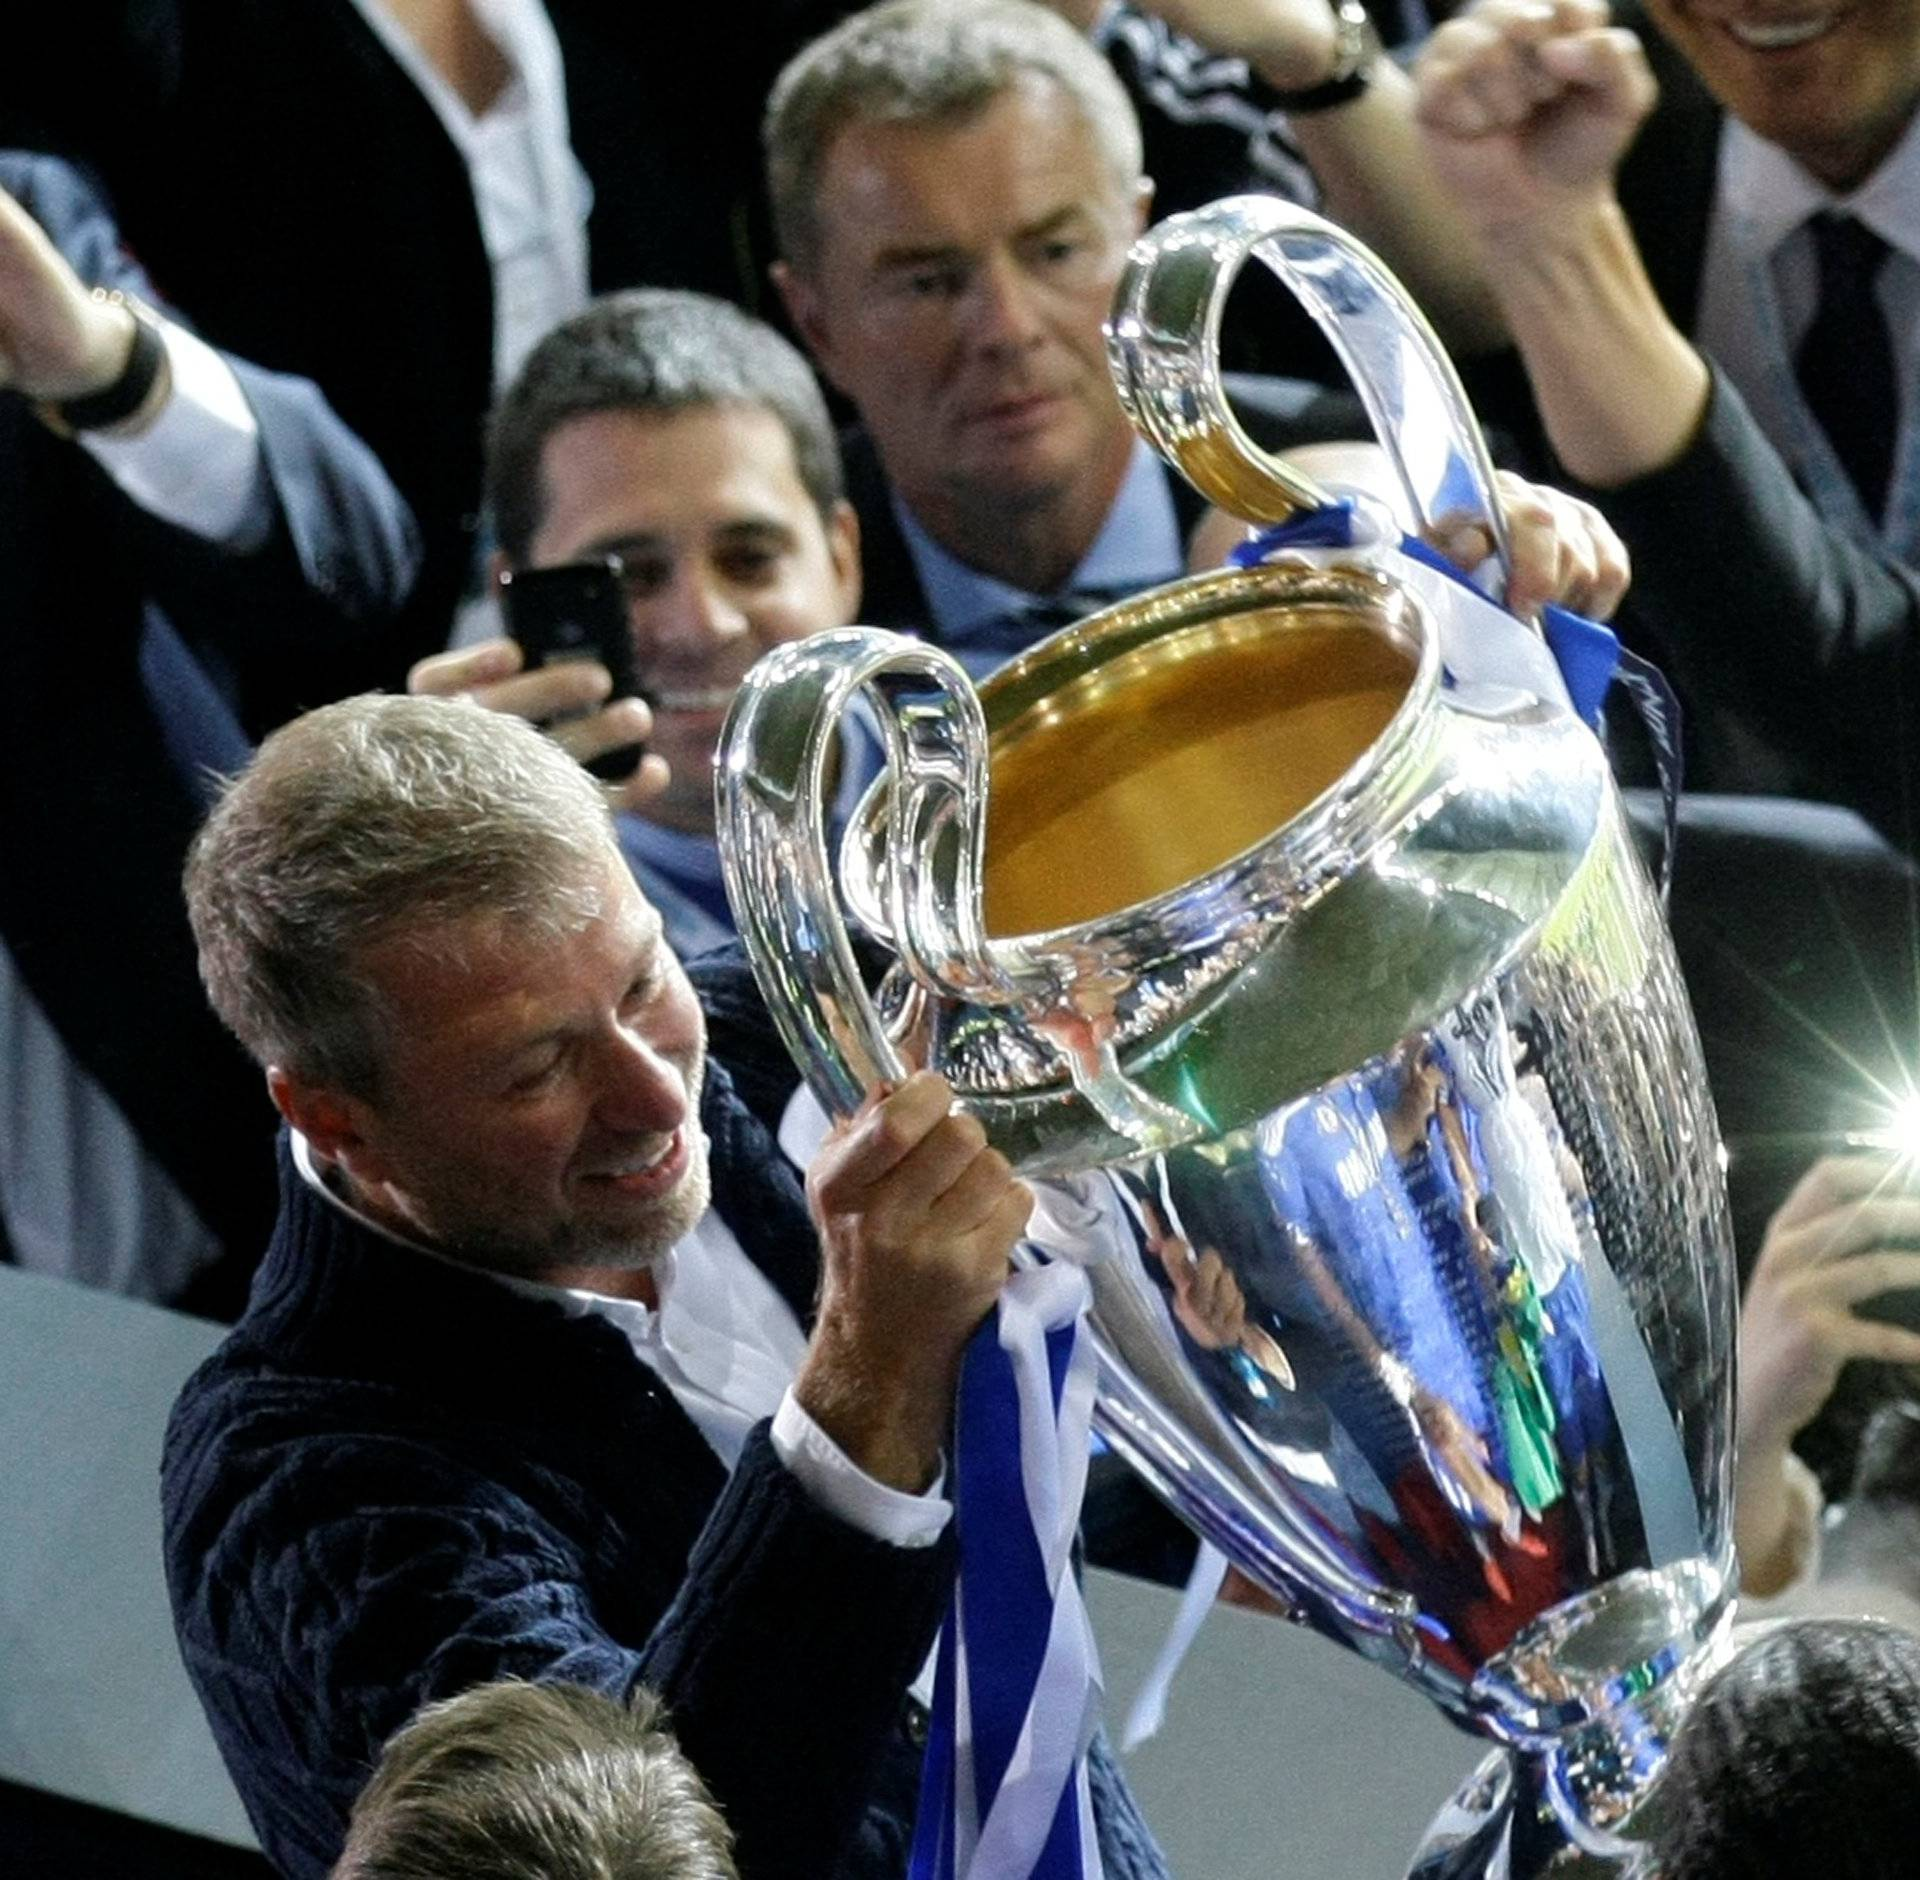 FILE PHOTO: Chelsea owner Abramovich lifts the UEFA Champions League trophy after winning the final soccer match against Bayern Munich at the Allianz Arena in Munich